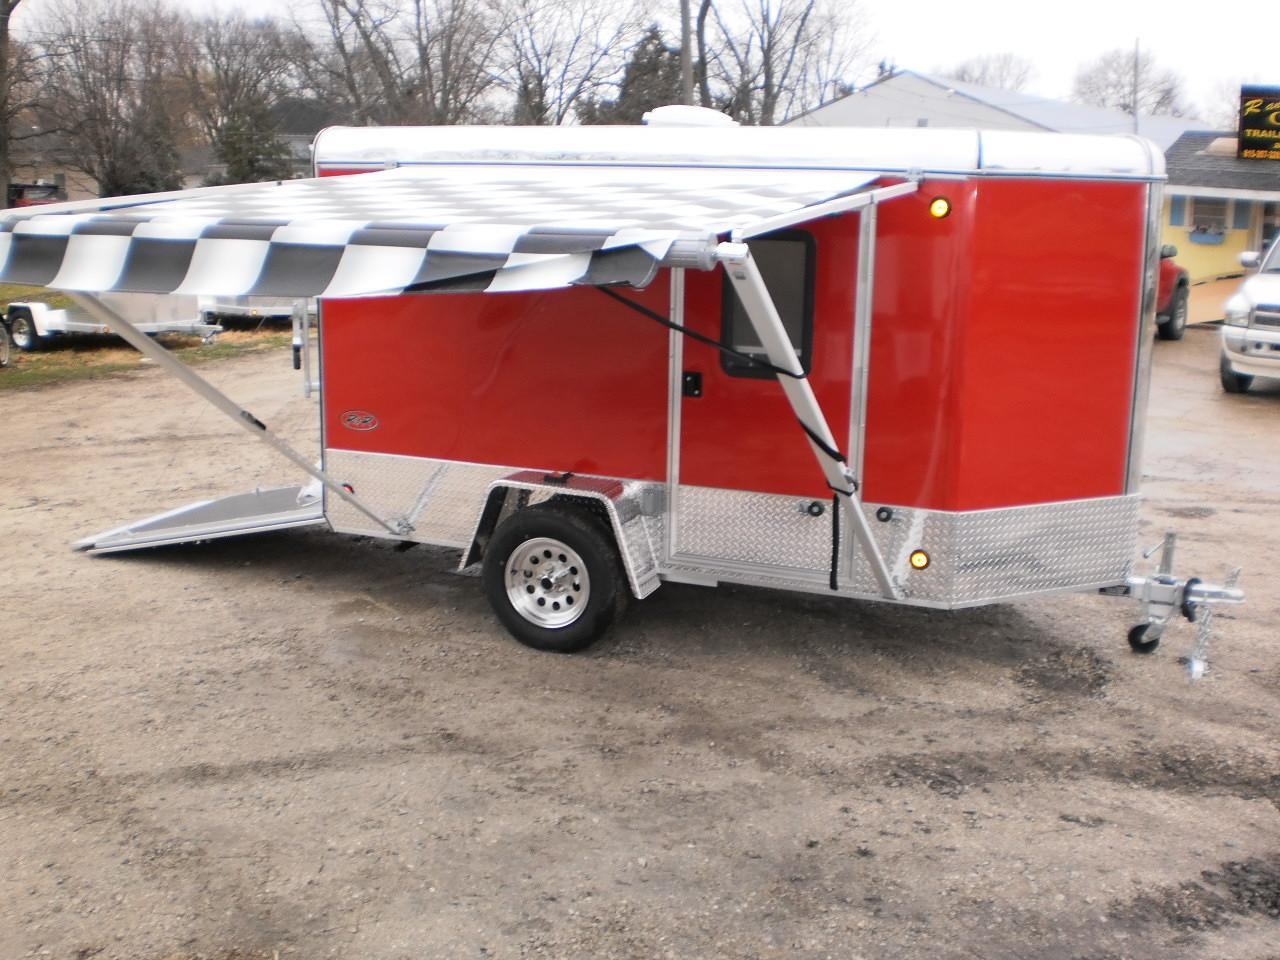 ... R and R 5 x 10 All Aluminum VDC Worlds Smalled ... & R and R All Aluminum 5 x 10 - Worlds Smallest Toy Hauler